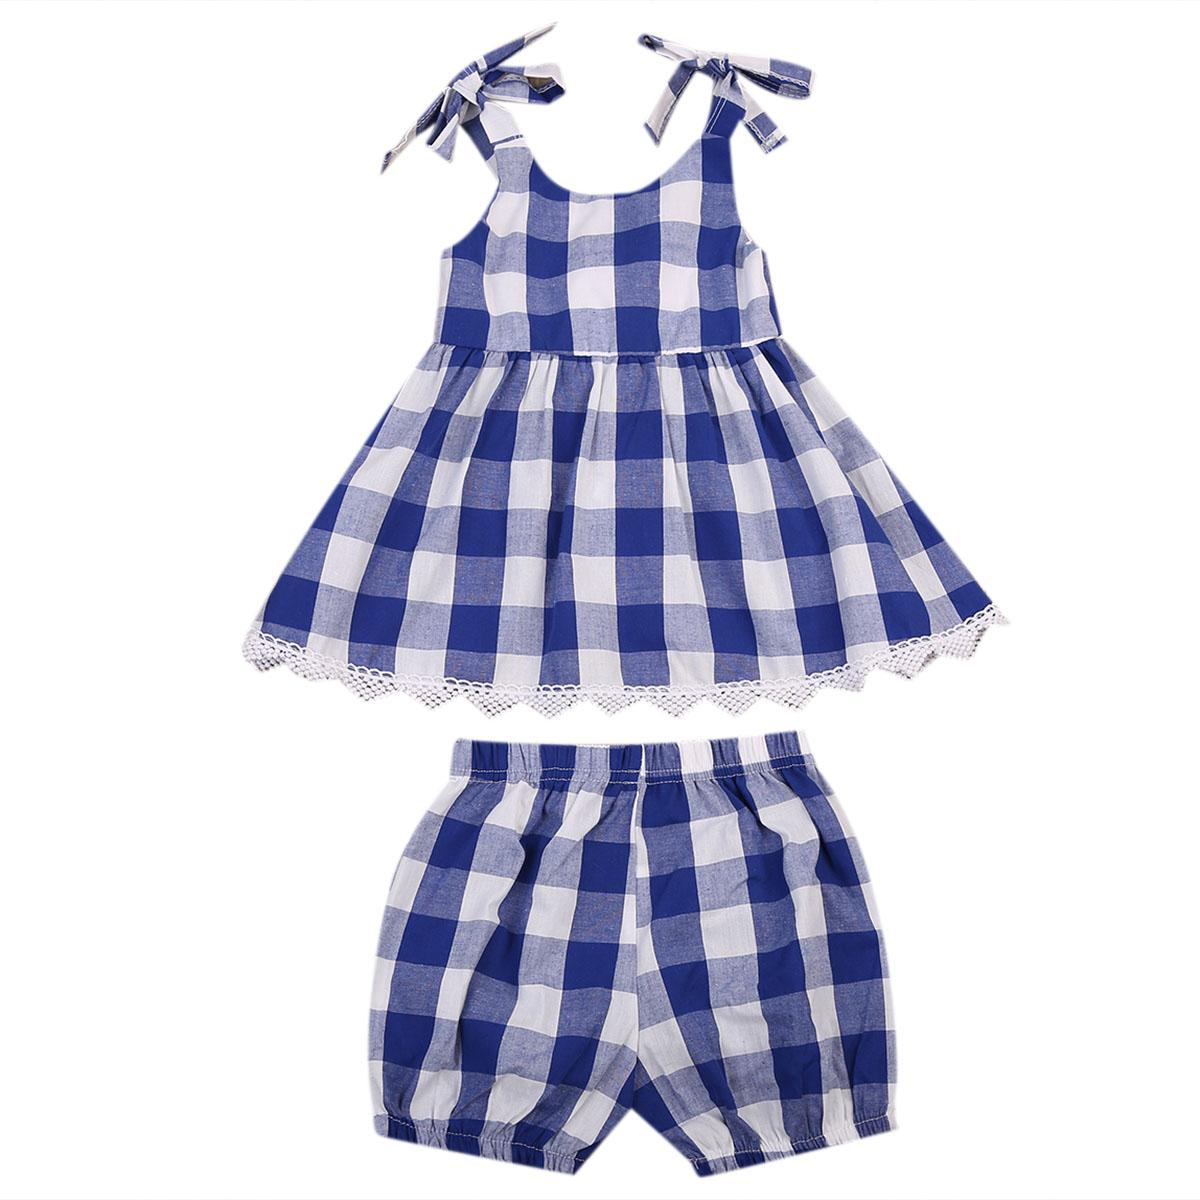 c2231cab5940 2019 Toddler Kids Baby Girls Checked Dress Tops+Shorts Outfits ...